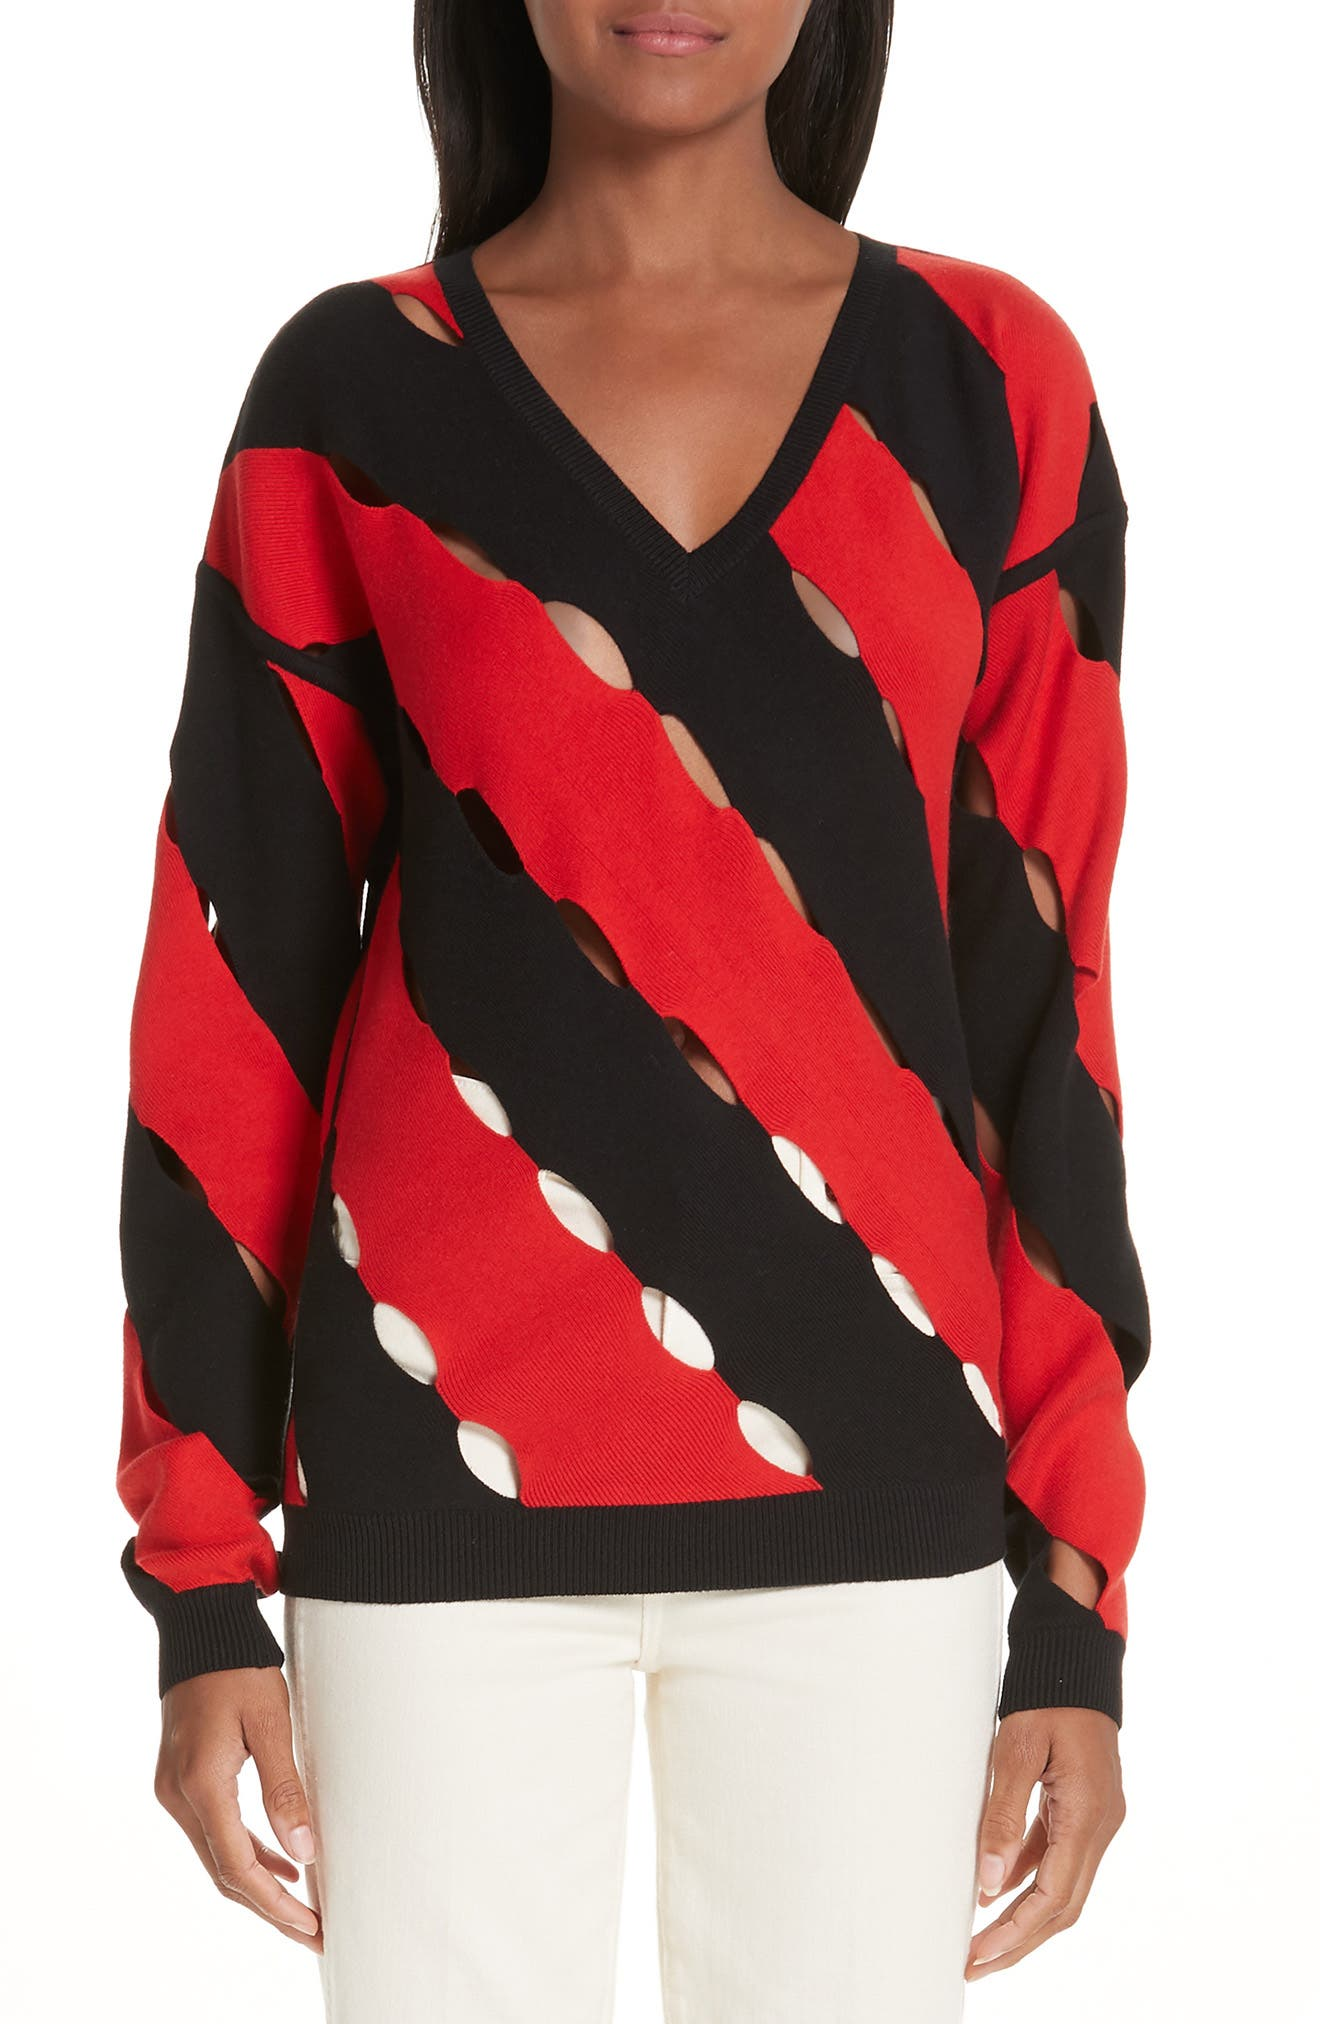 VICTOR GLEMAUD Diagonal Stripe Sweater in Black And Red Combo